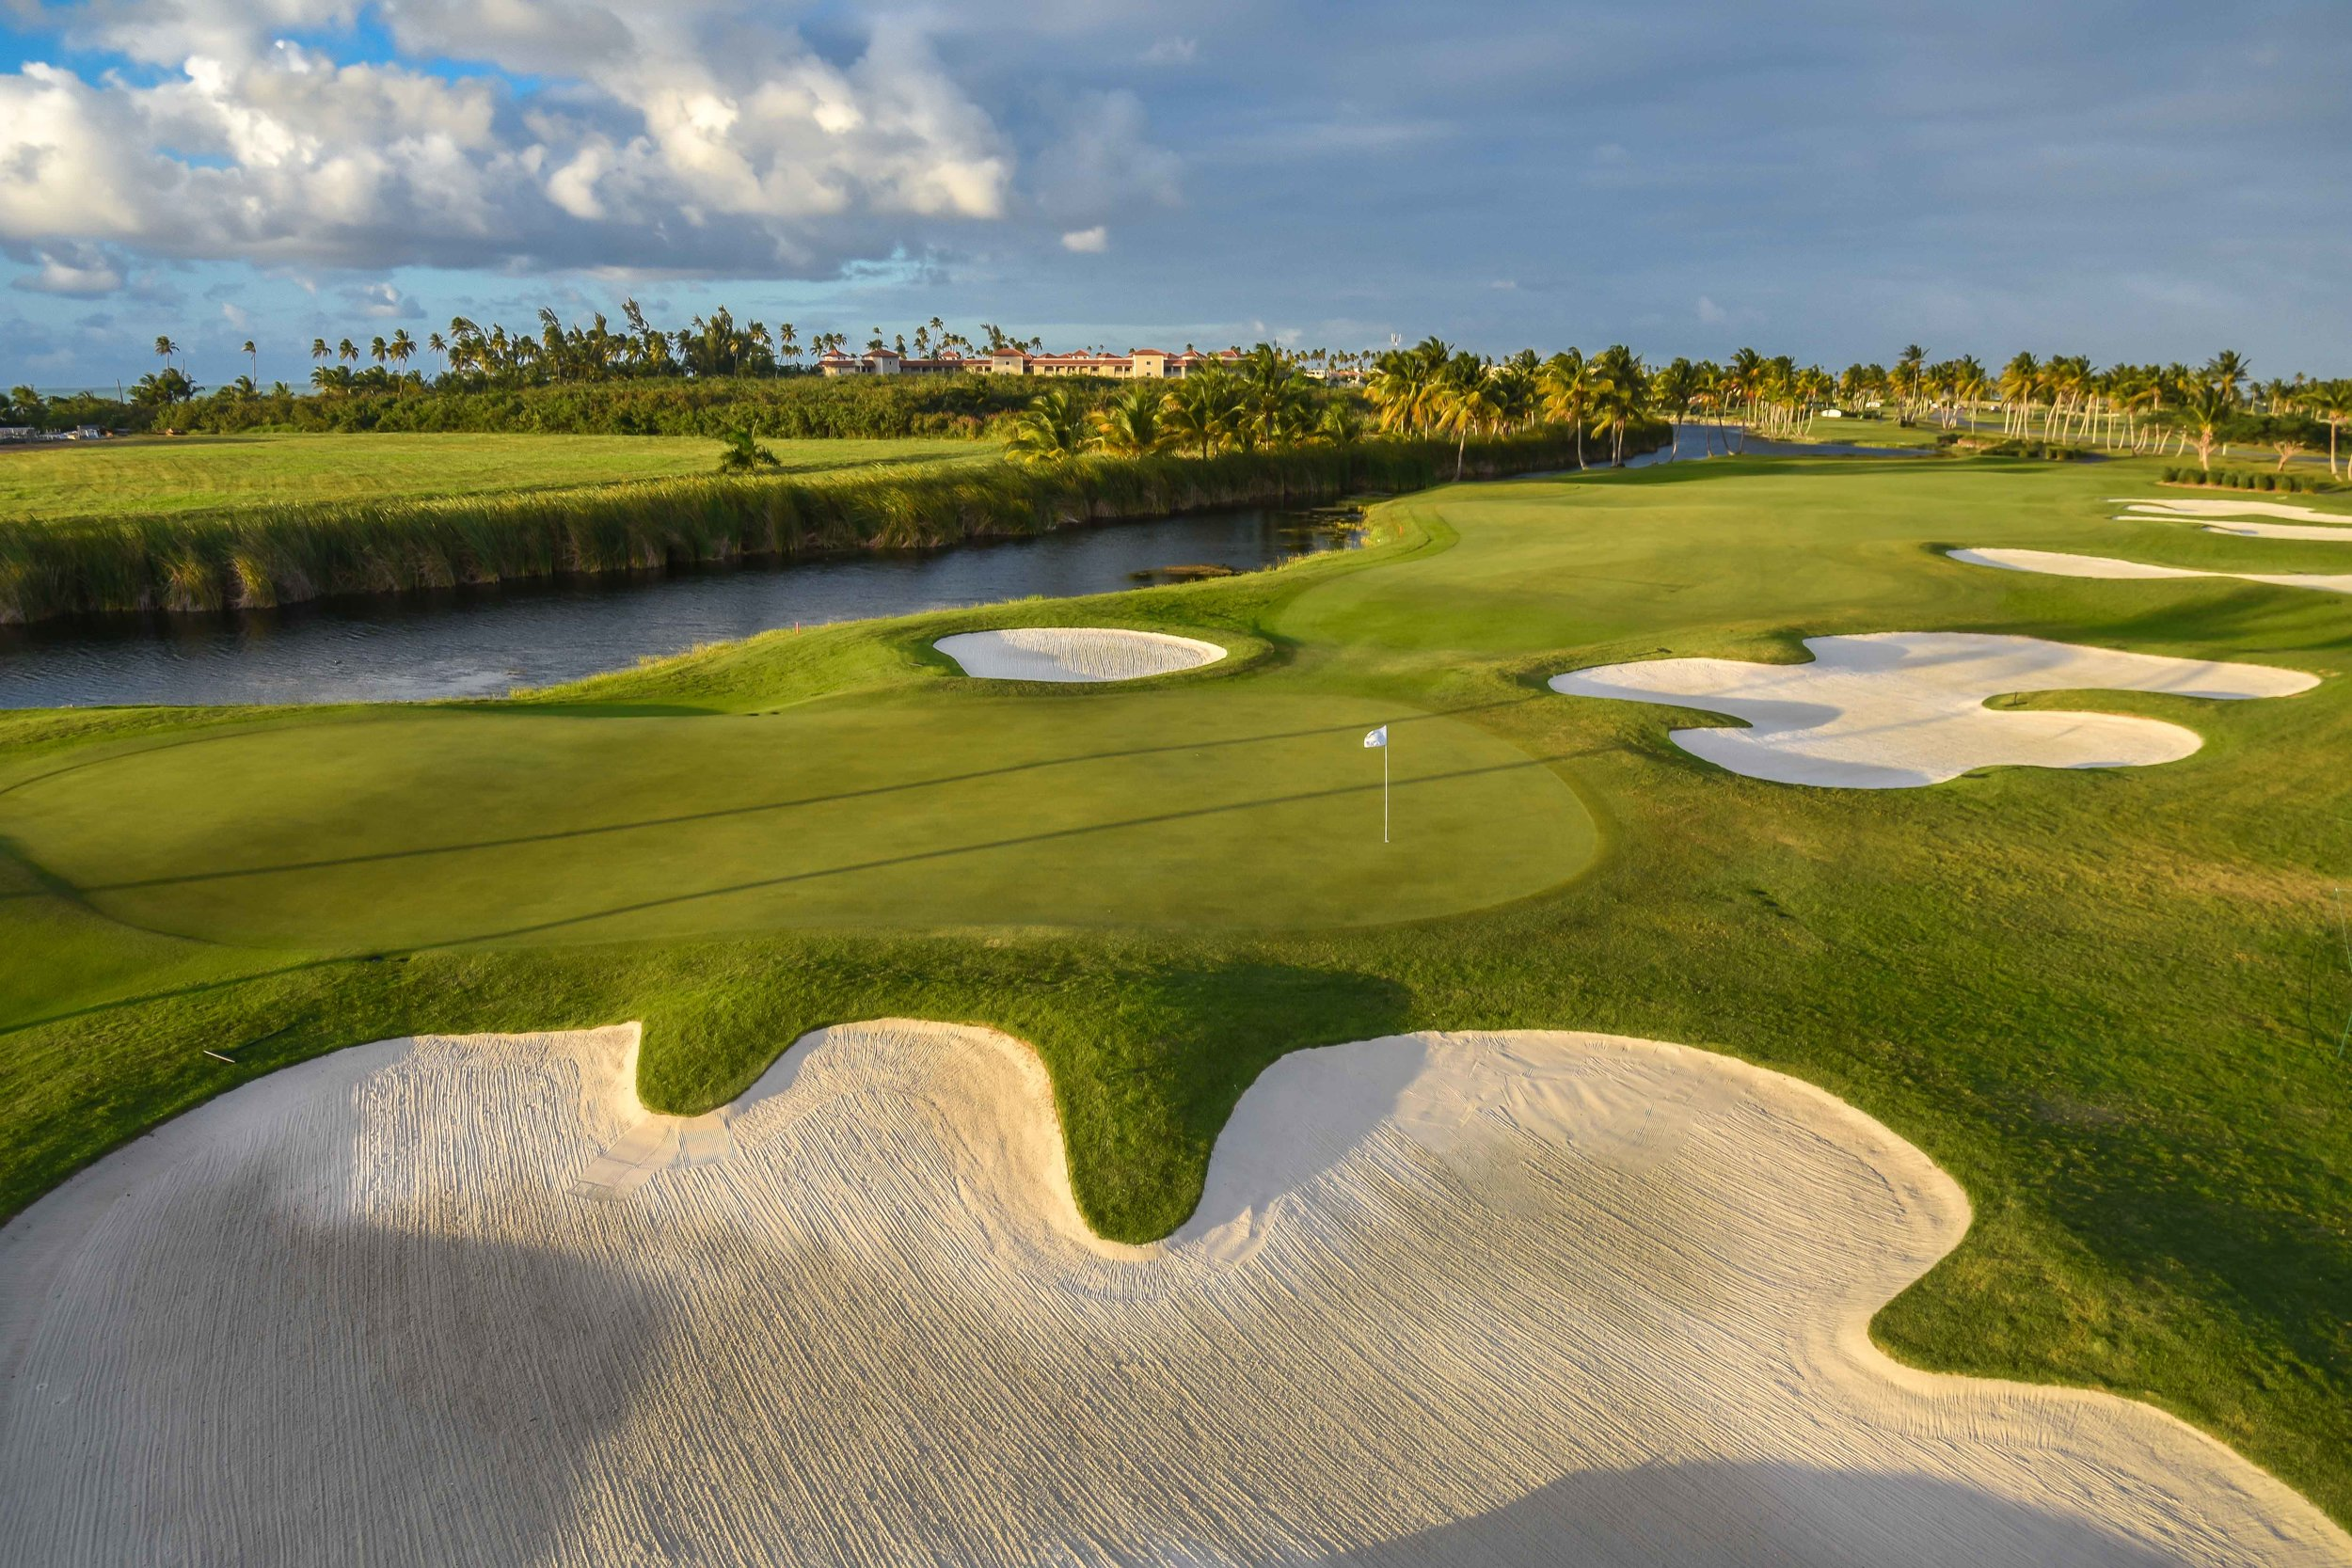 Coco Beach plays home to the PGA Tour's Puerto Rico Open.